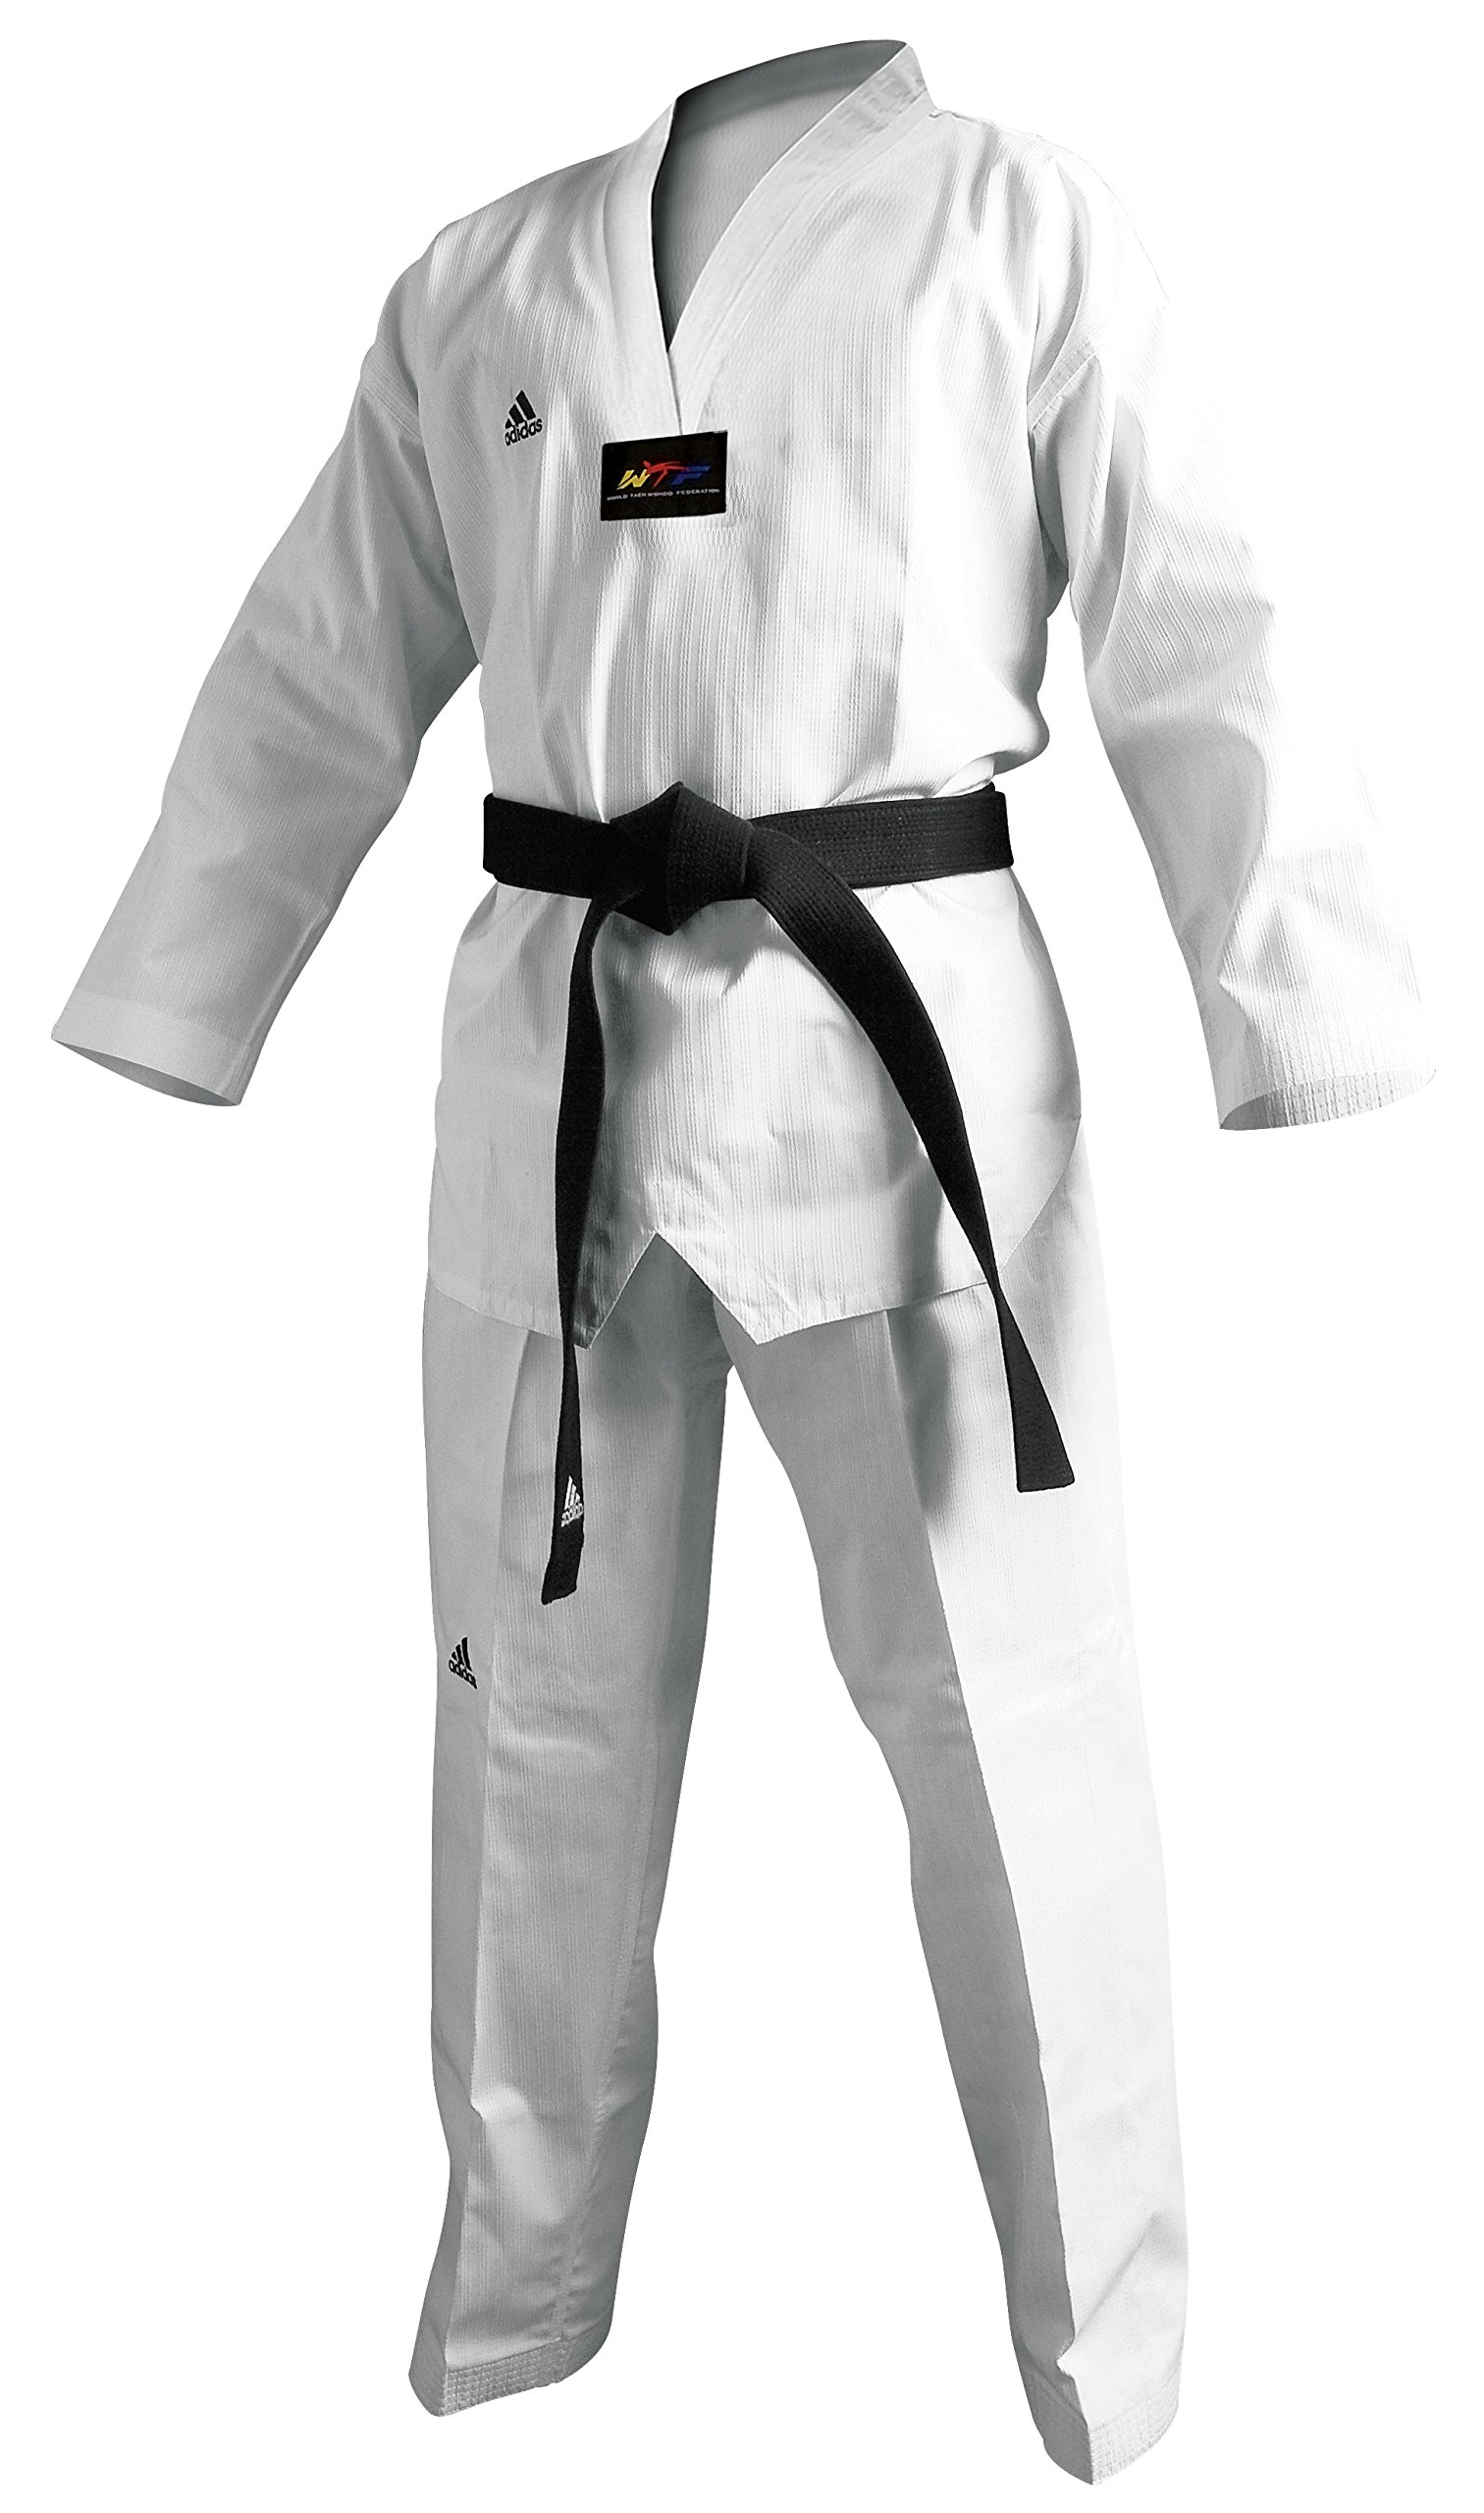 Adidas Champion II White Taekwondo Uniforms (0) by adidas